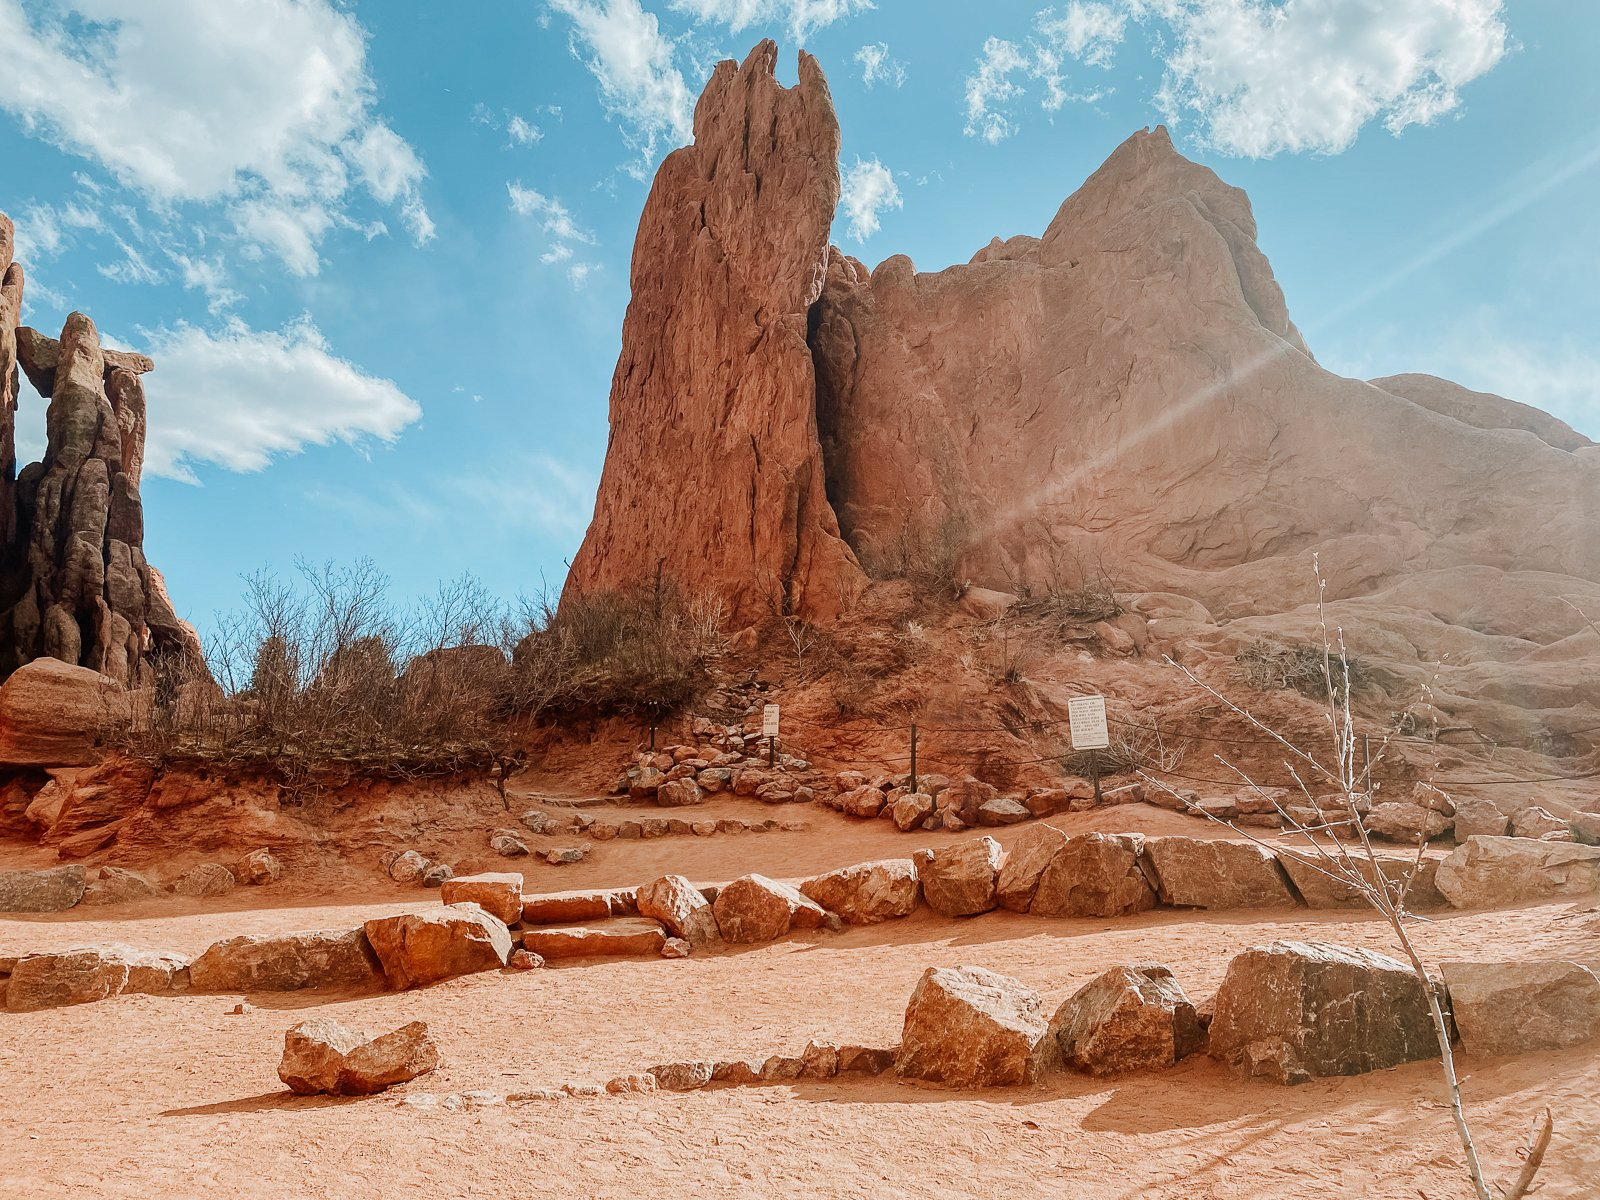 Red rocks of Three Graces Plaza jut into the sky. This location is used for elopements, intimate weddings or hiking.